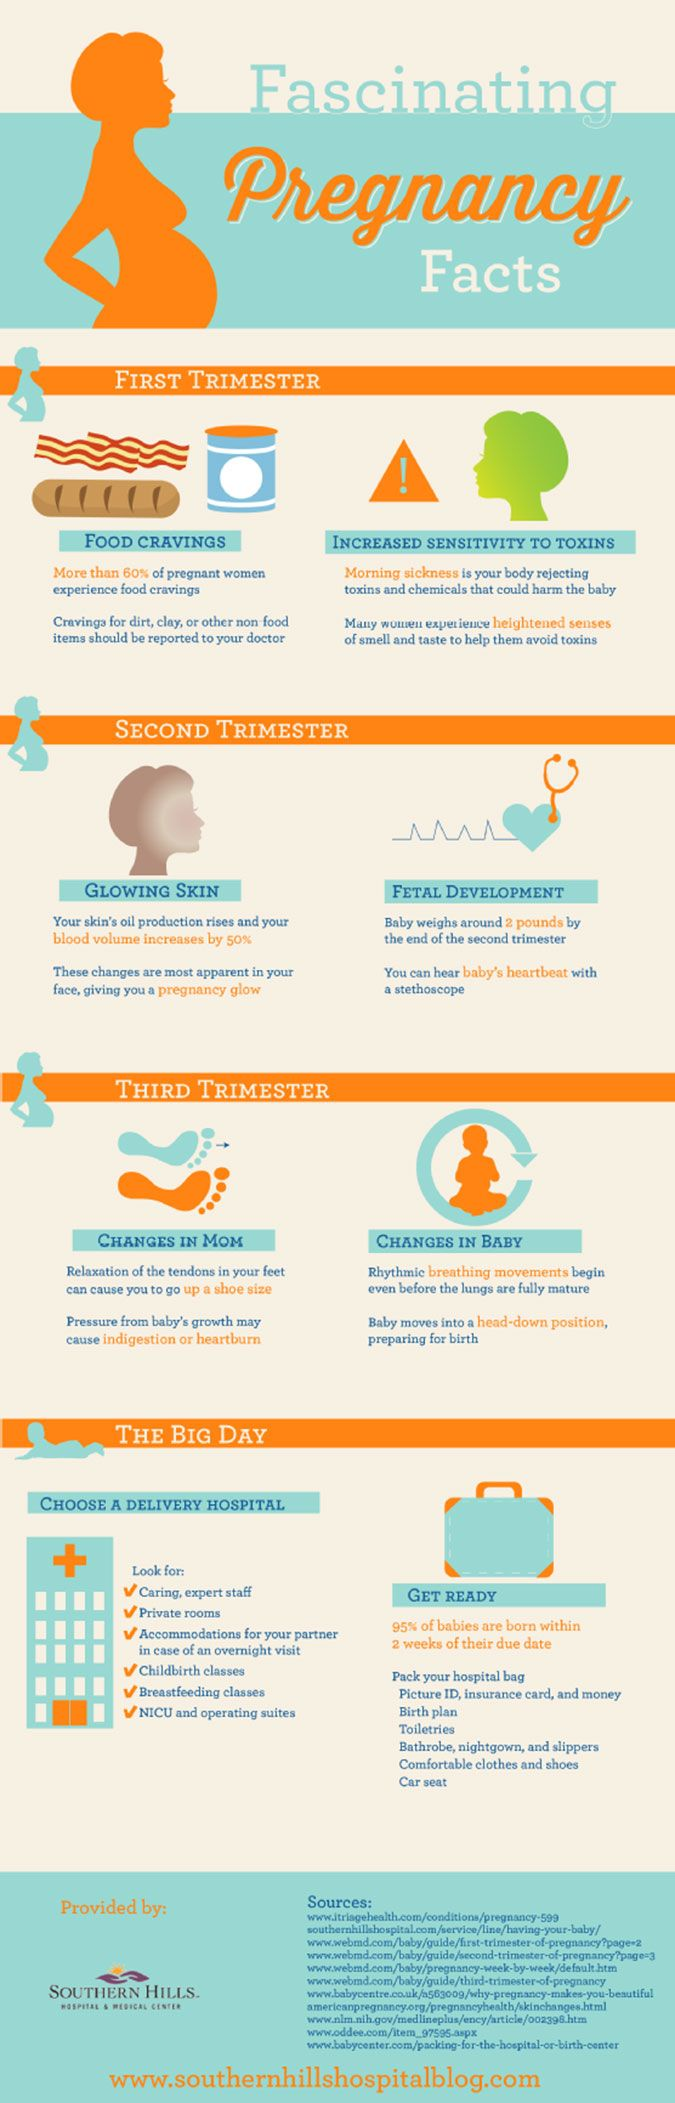 Quick Facts About Pregnancy